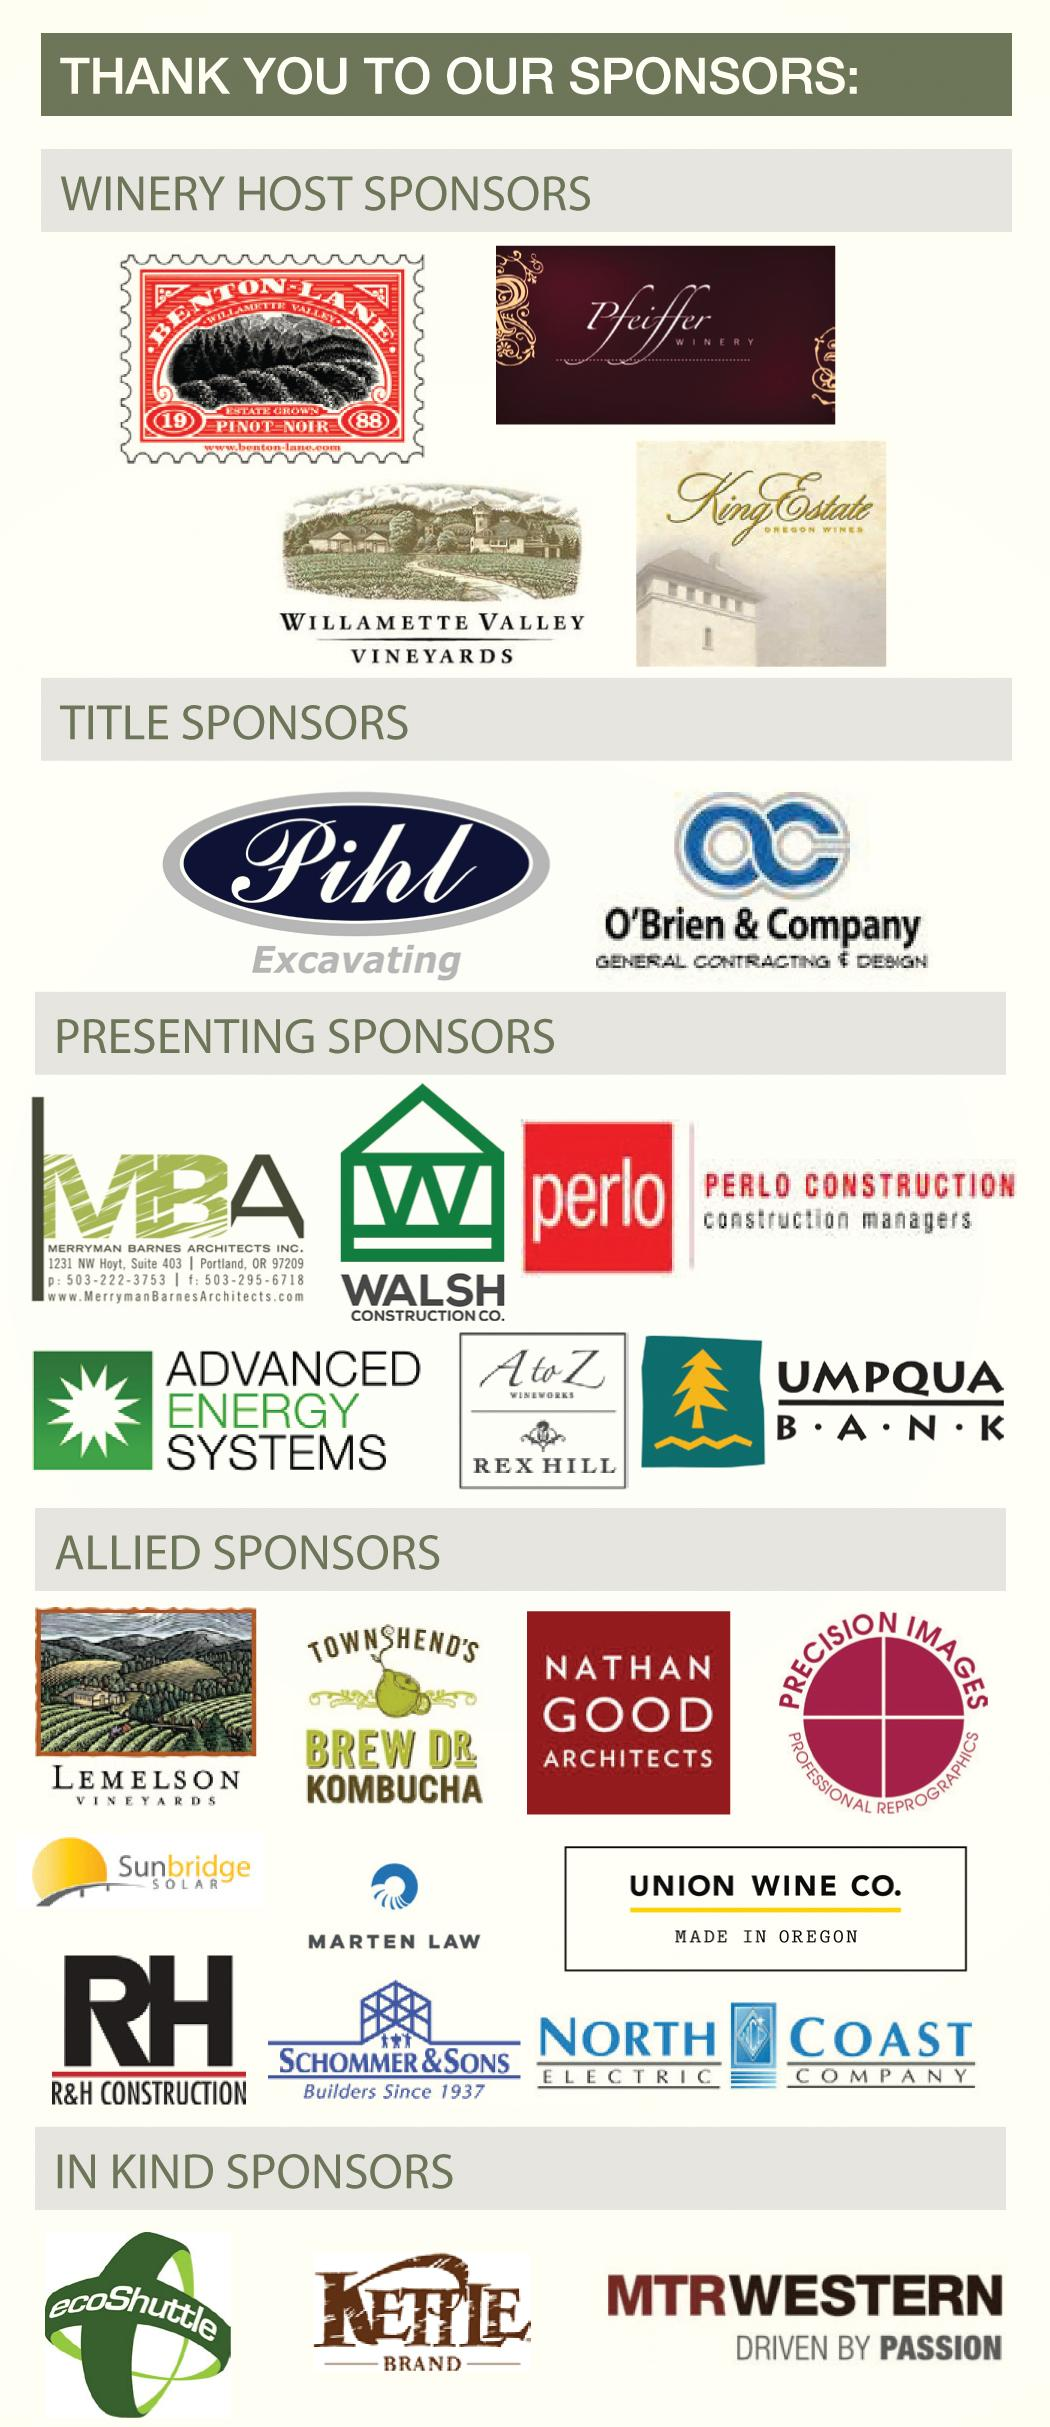 2016 SWT sponsors May 11